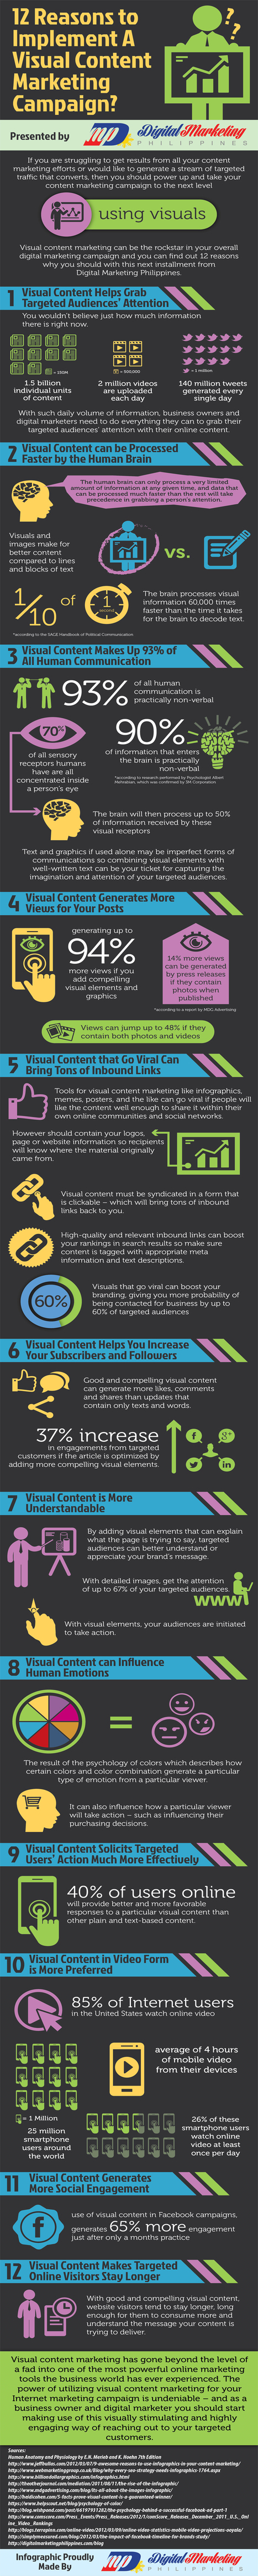 12 Reasons to Implement A Visual Content Marketing Campaign (Infographic) | Buyer Traffic Generation | Content & Video Marketing | SEO | Scoop.it